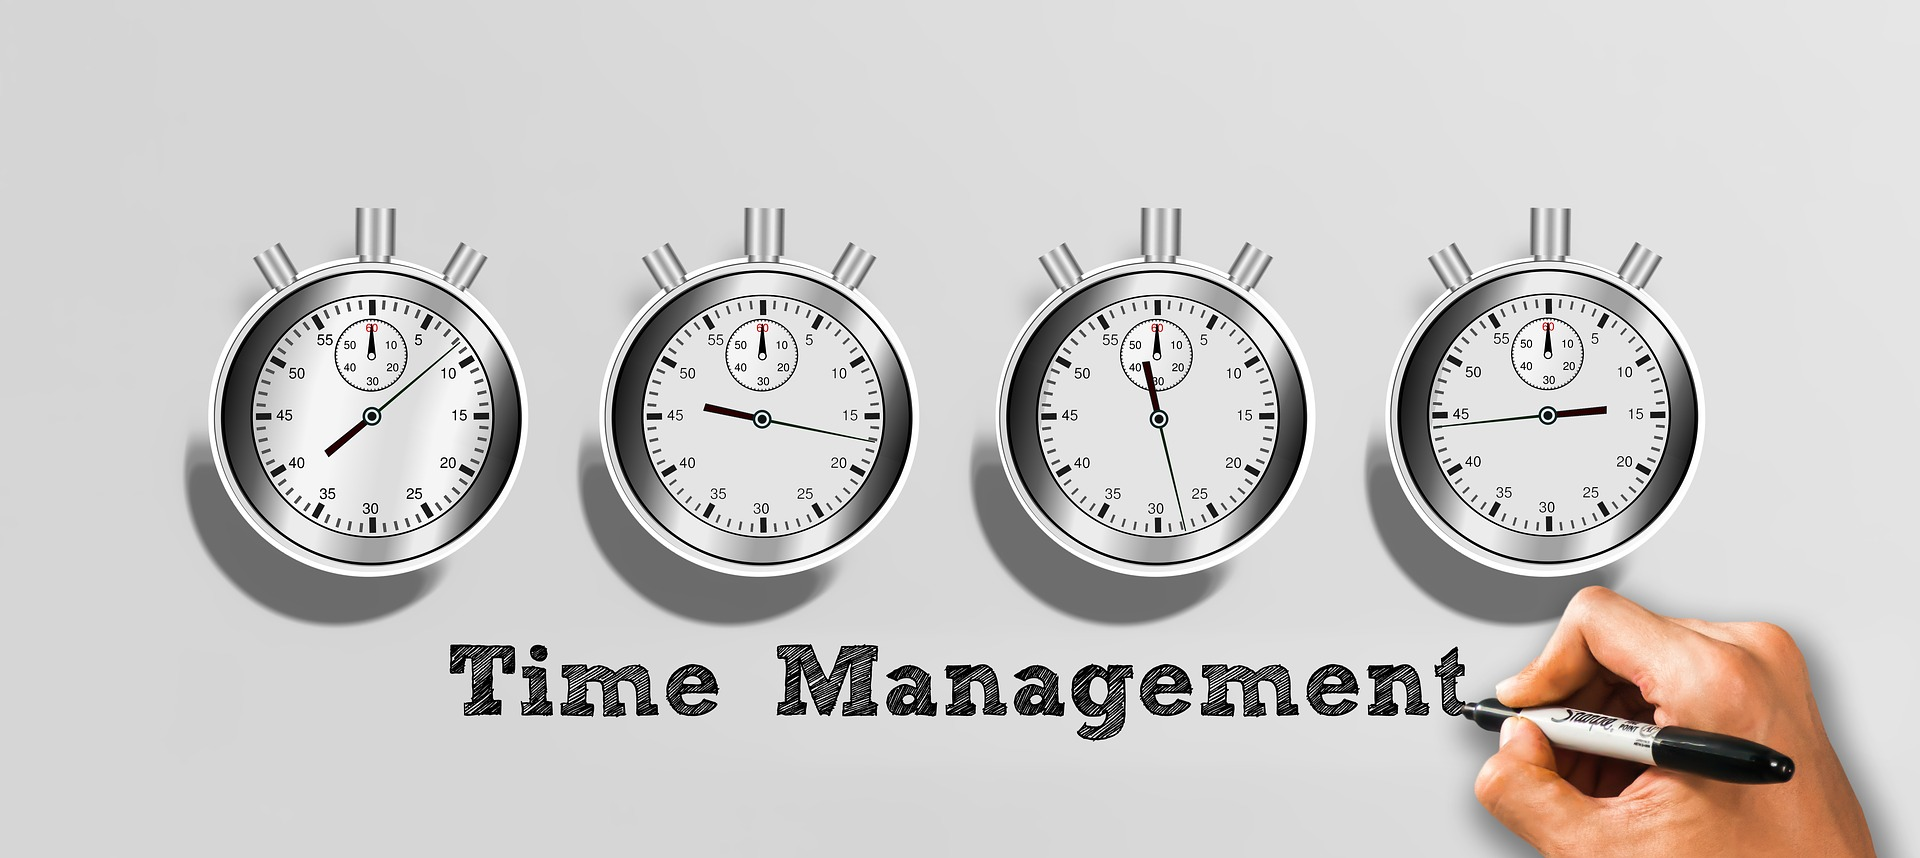 Robotics and Automation Time Management